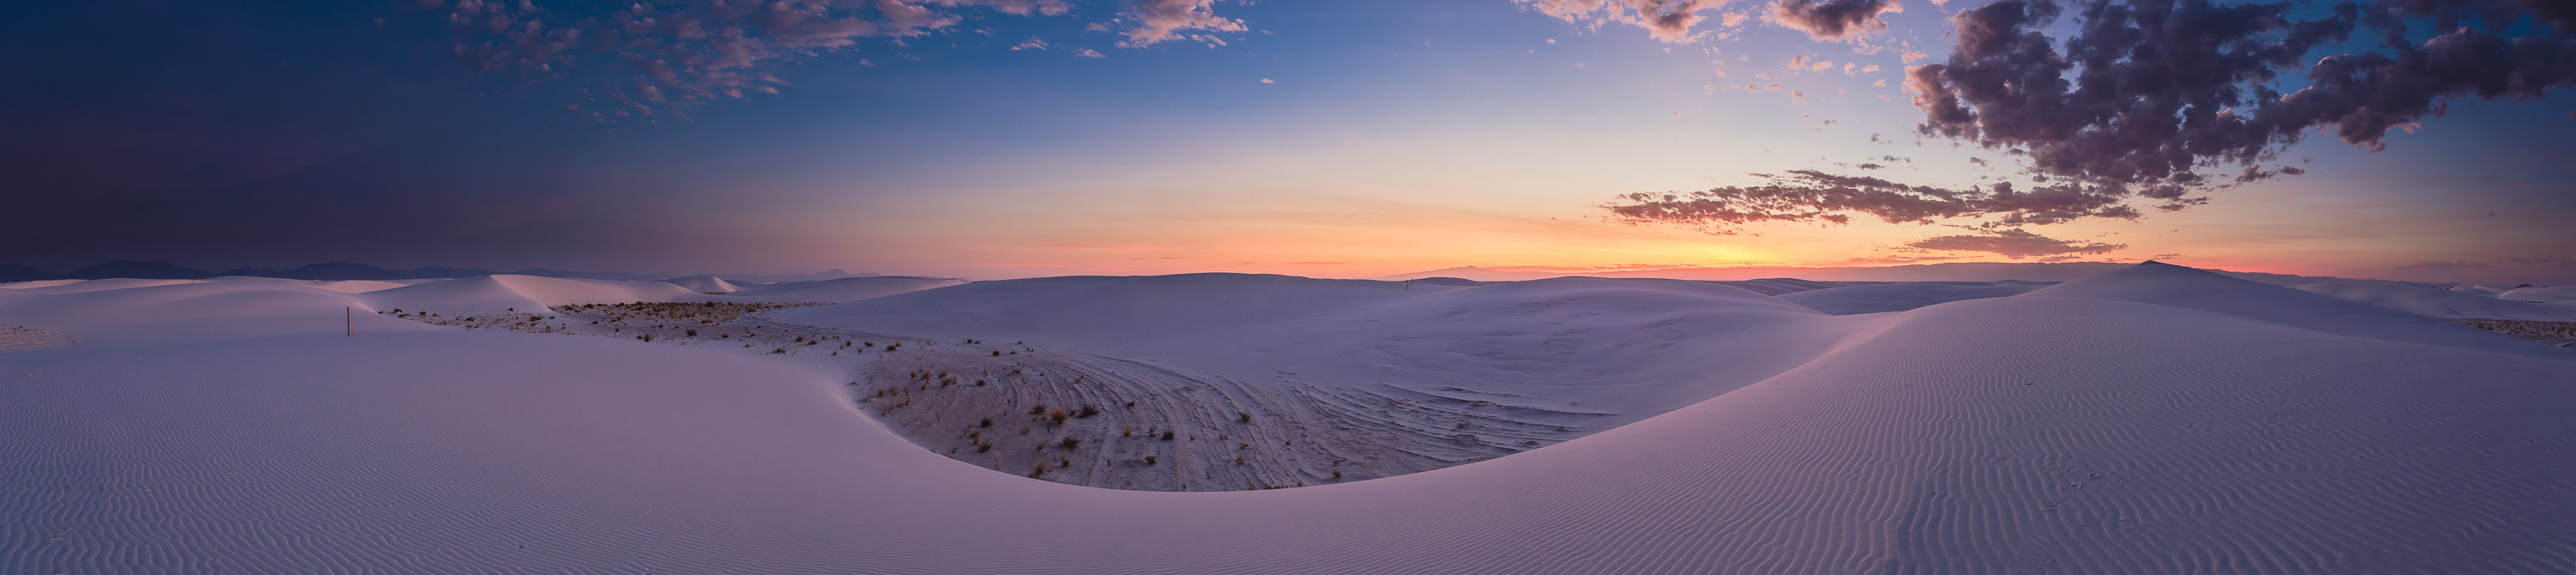 Ruidoso - New Mexico - White Sands Panorama